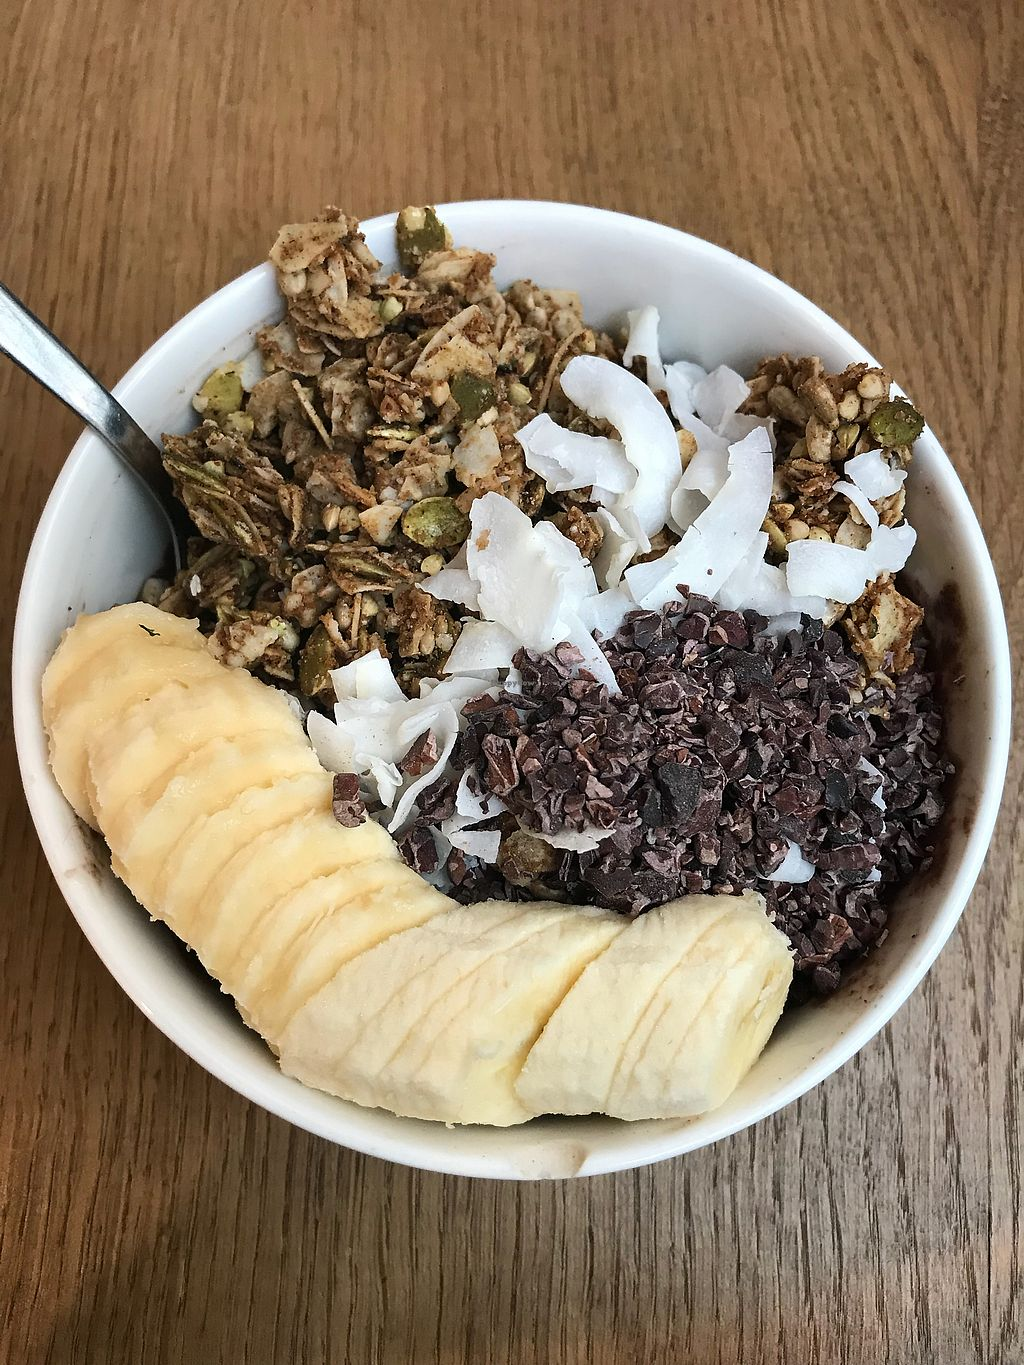 """Photo of Juice Brothers - Raamsteeg  by <a href=""""/members/profile/MusicalVeggie"""">MusicalVeggie</a> <br/>Chocolate protein acai bowl  <br/> October 30, 2017  - <a href='/contact/abuse/image/66019/320186'>Report</a>"""